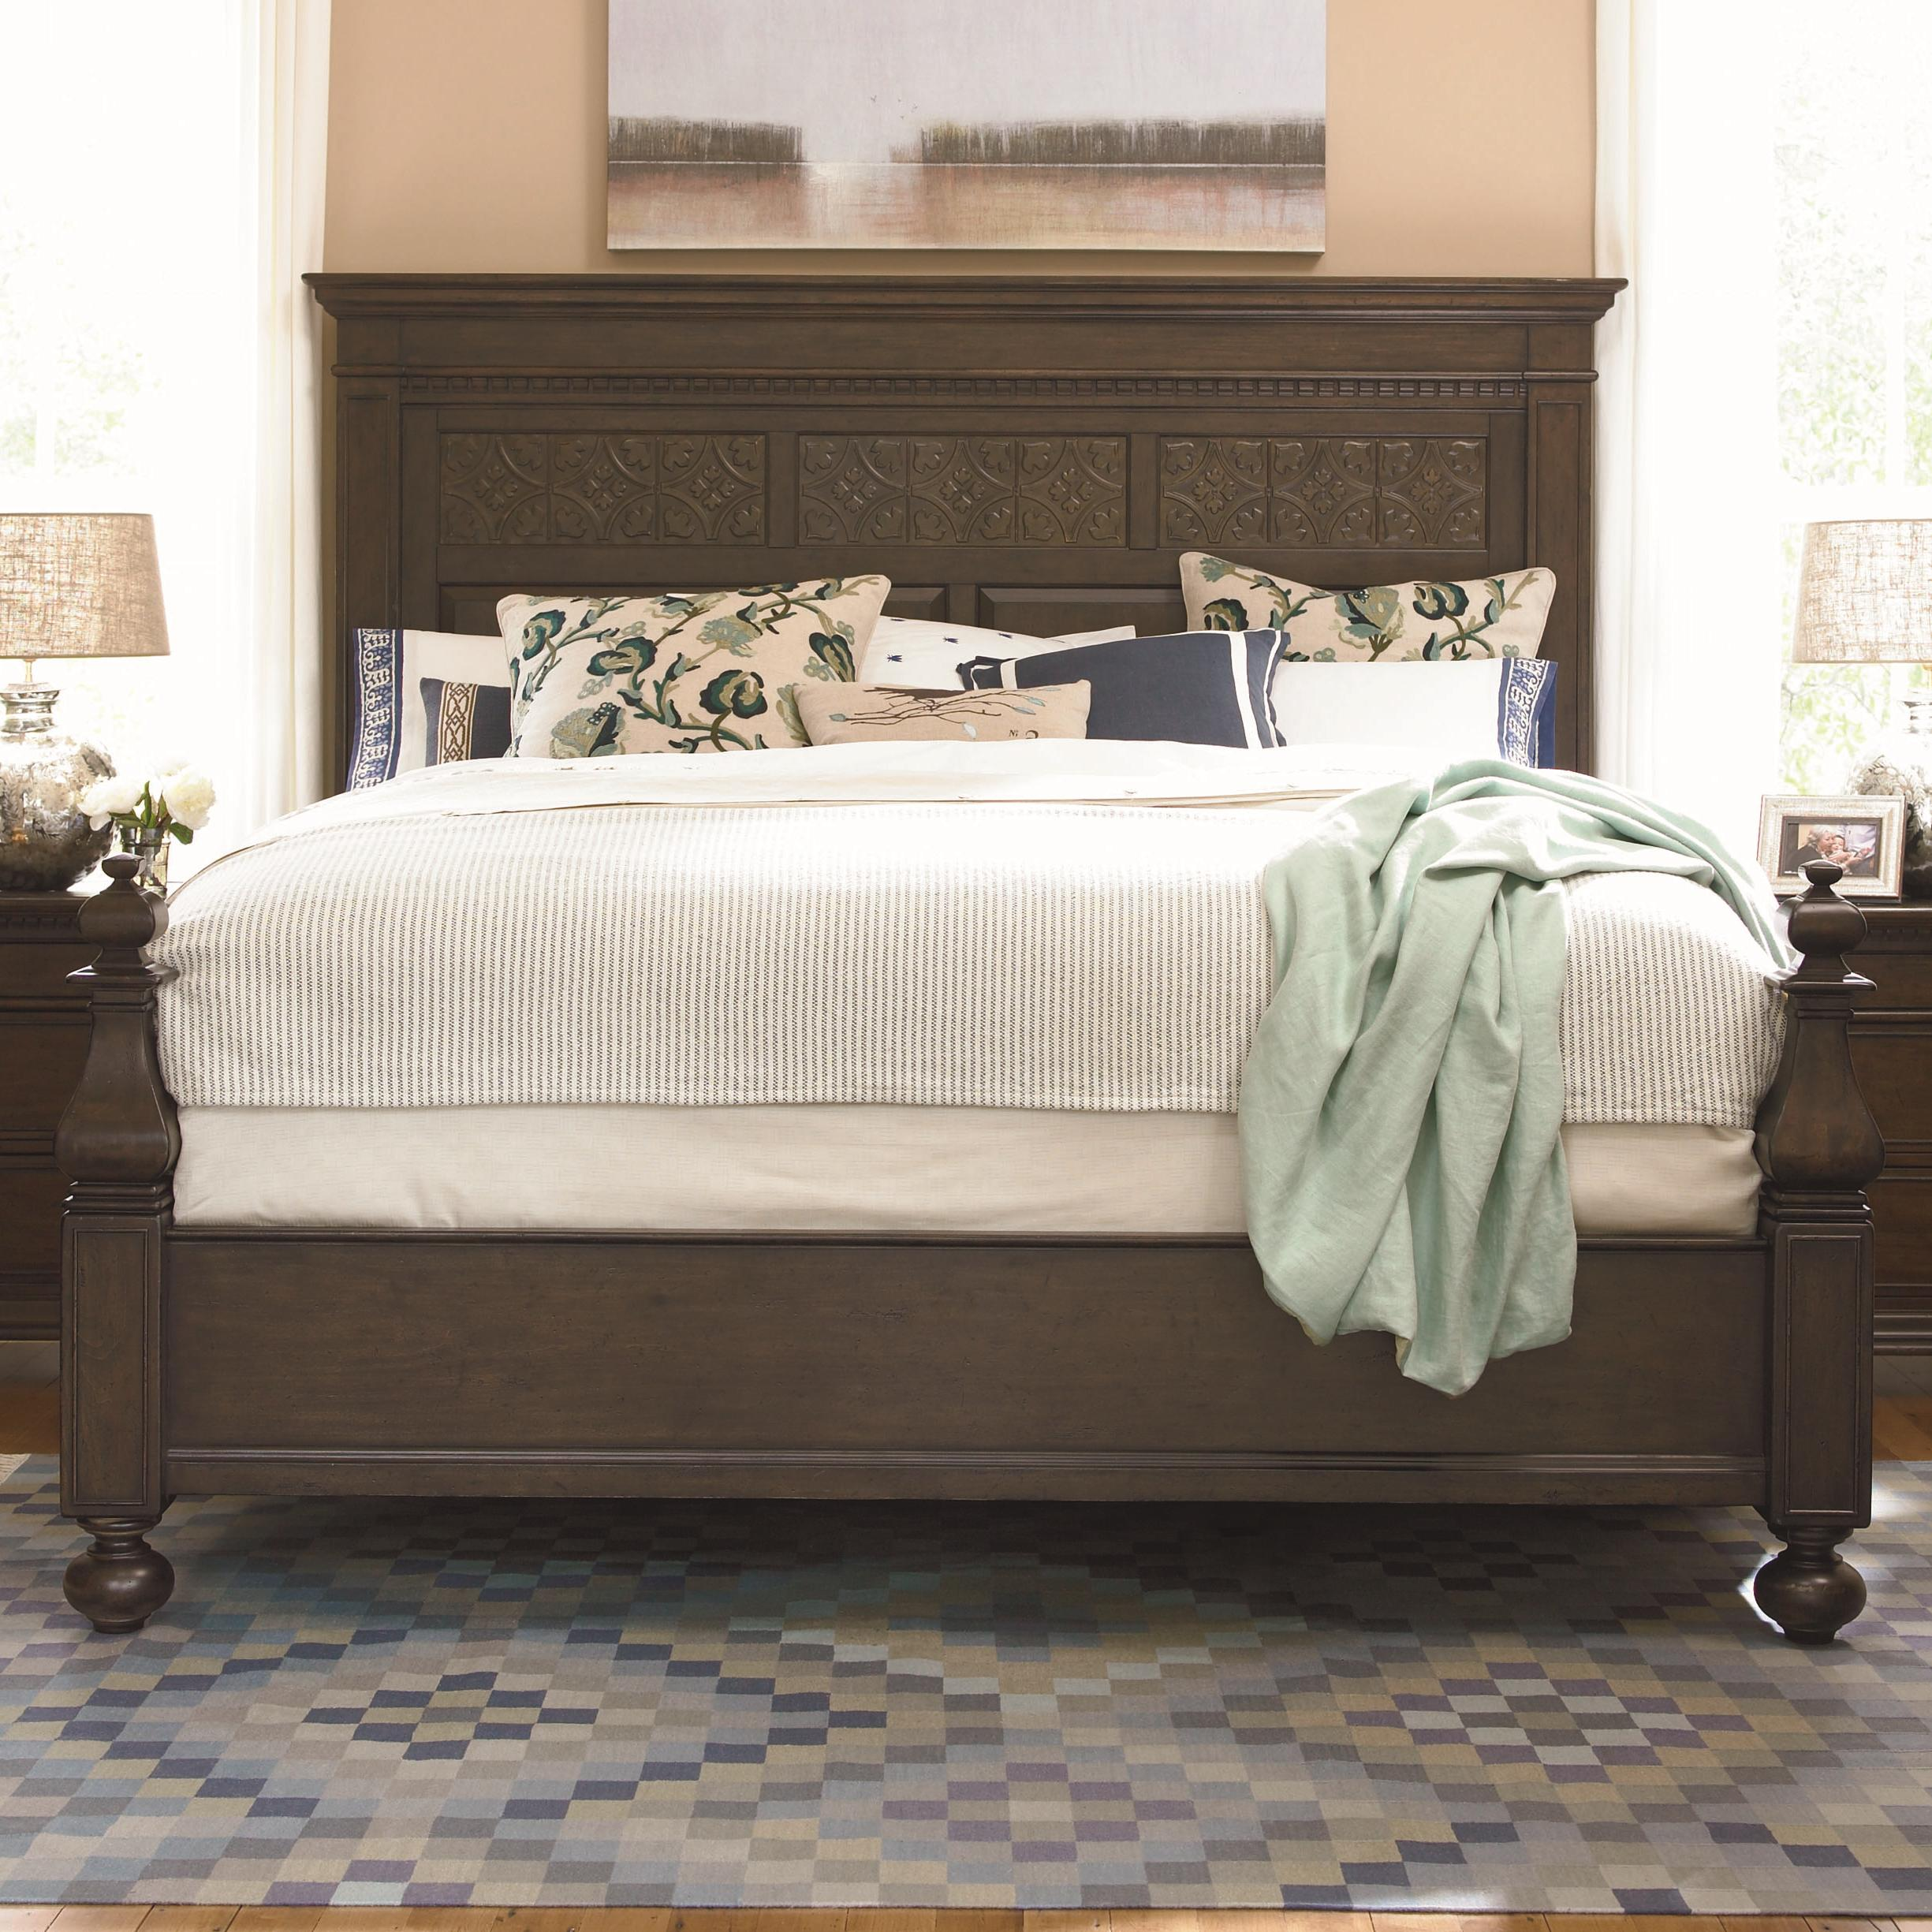 Paula Deen by Universal Down Home Queen Aunt Peggy's Bed - Item Number: 193250+F+R